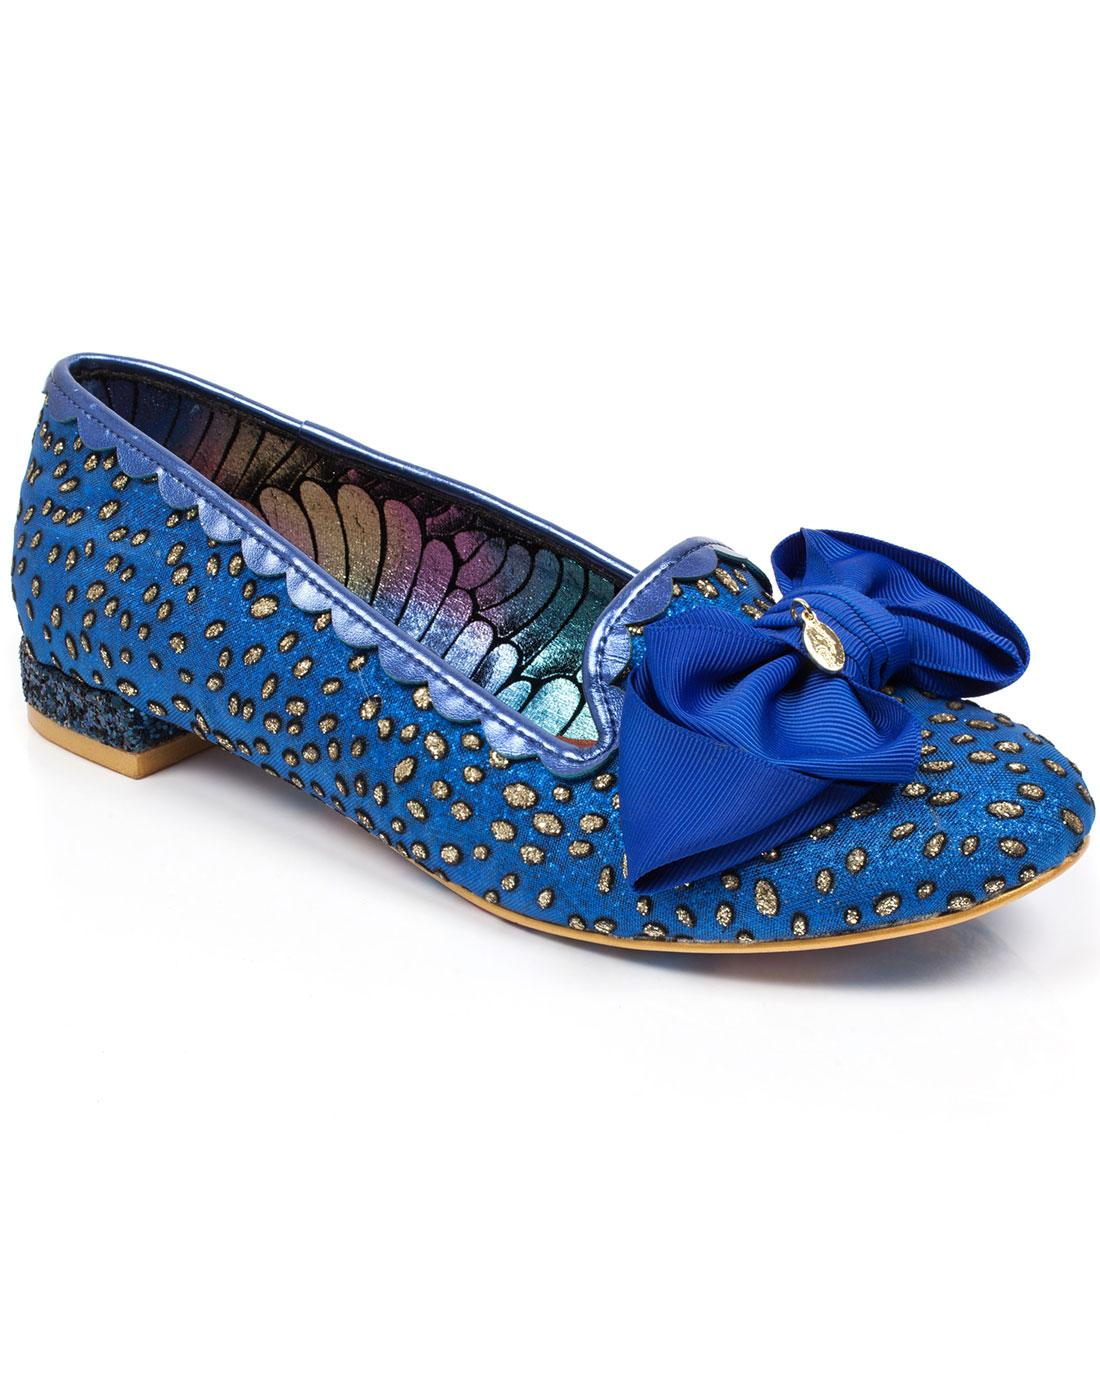 Sulu IRREGULAR CHOICE 50s Blue And Gold Bow Flats